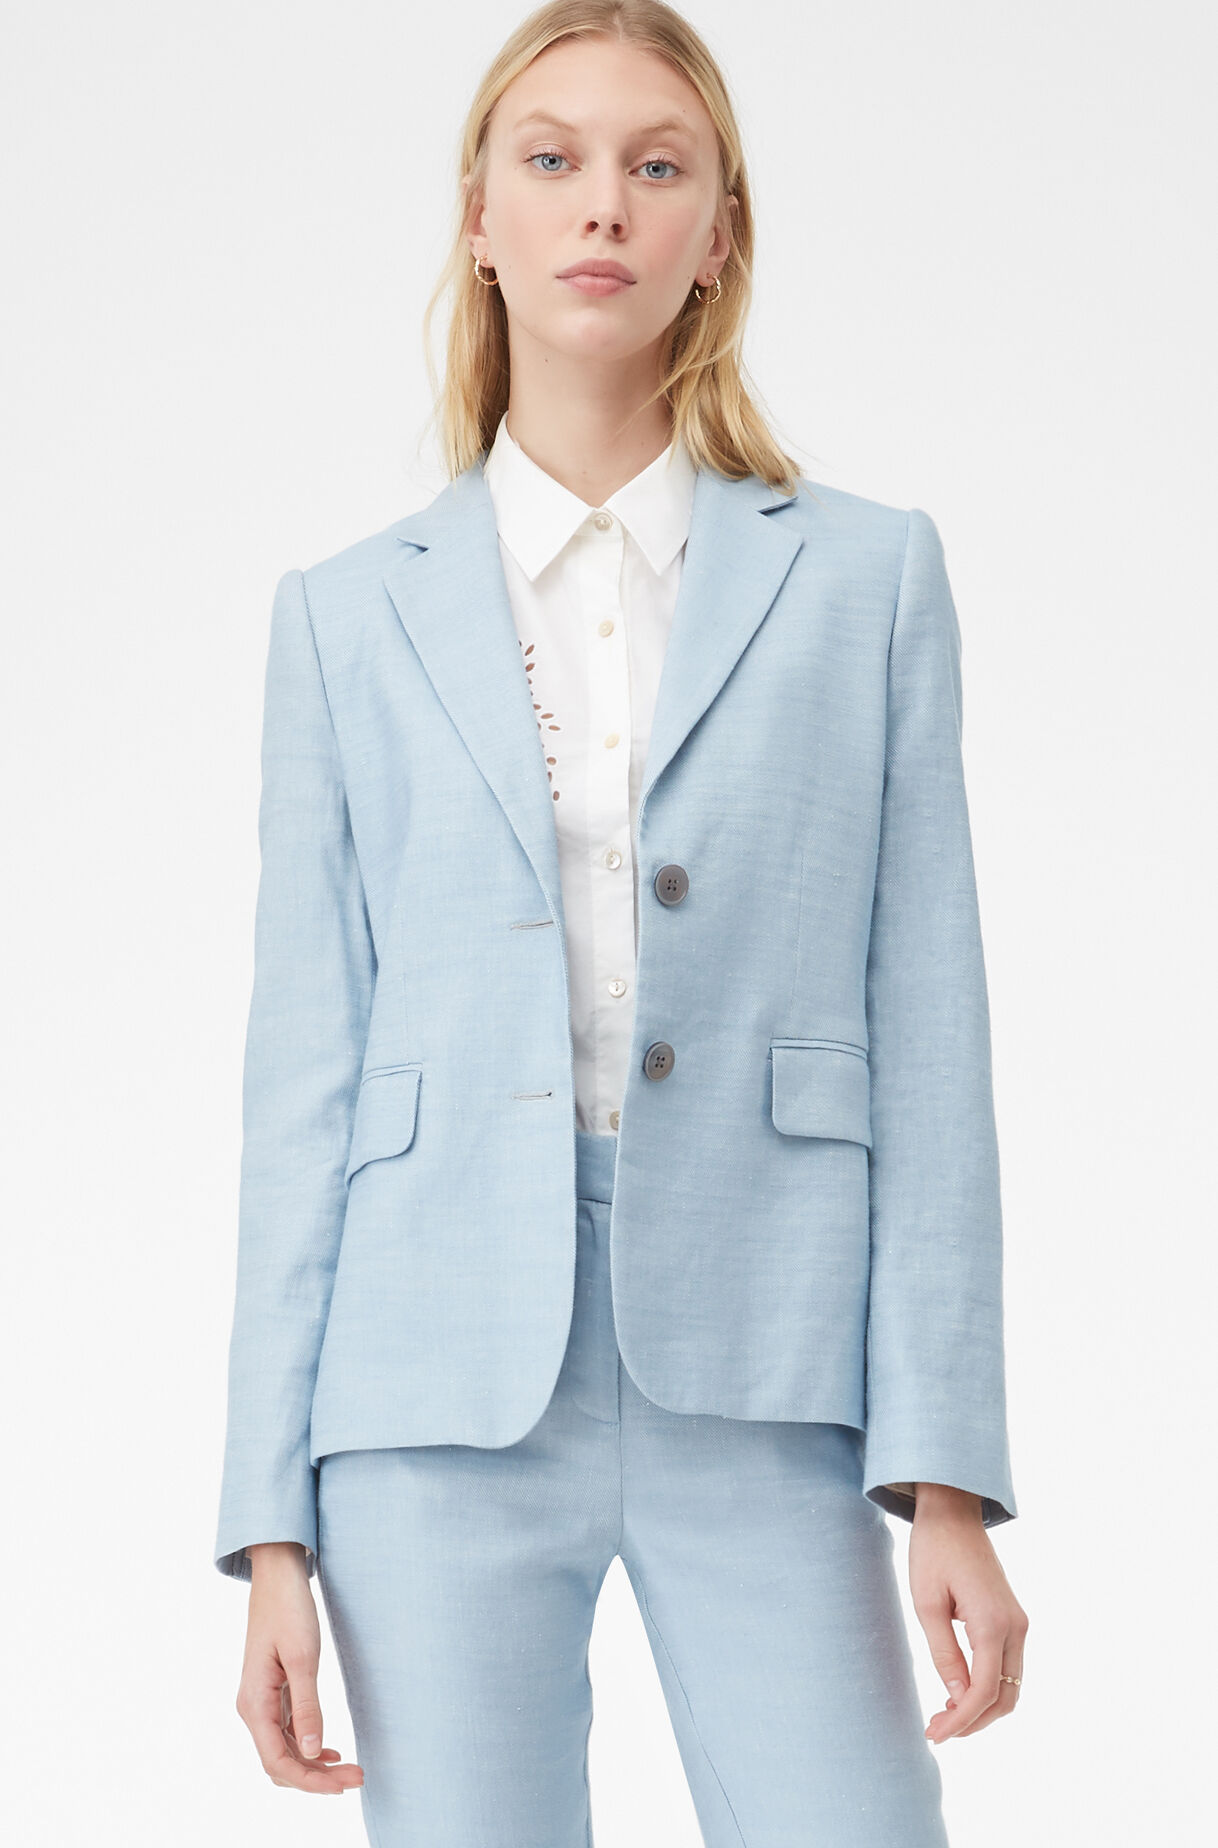 Tailored Twill Suiting Jacket, , large